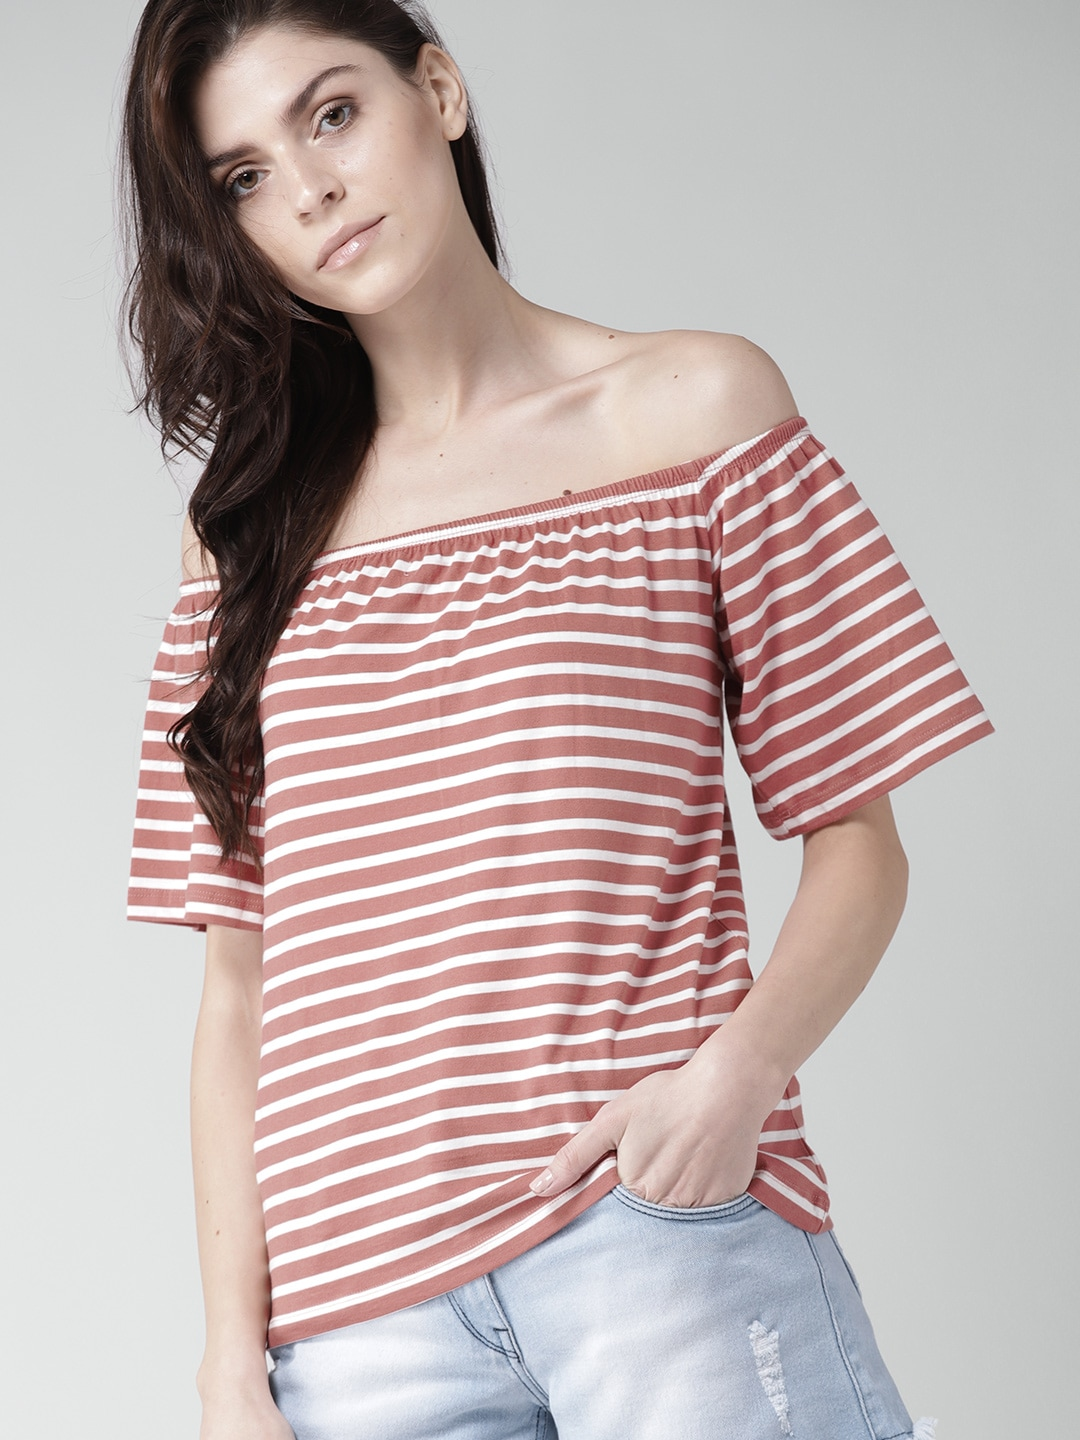 7573598e441f28 Mast   Harbour Cotton Tops - Buy Mast   Harbour Cotton Tops online in India